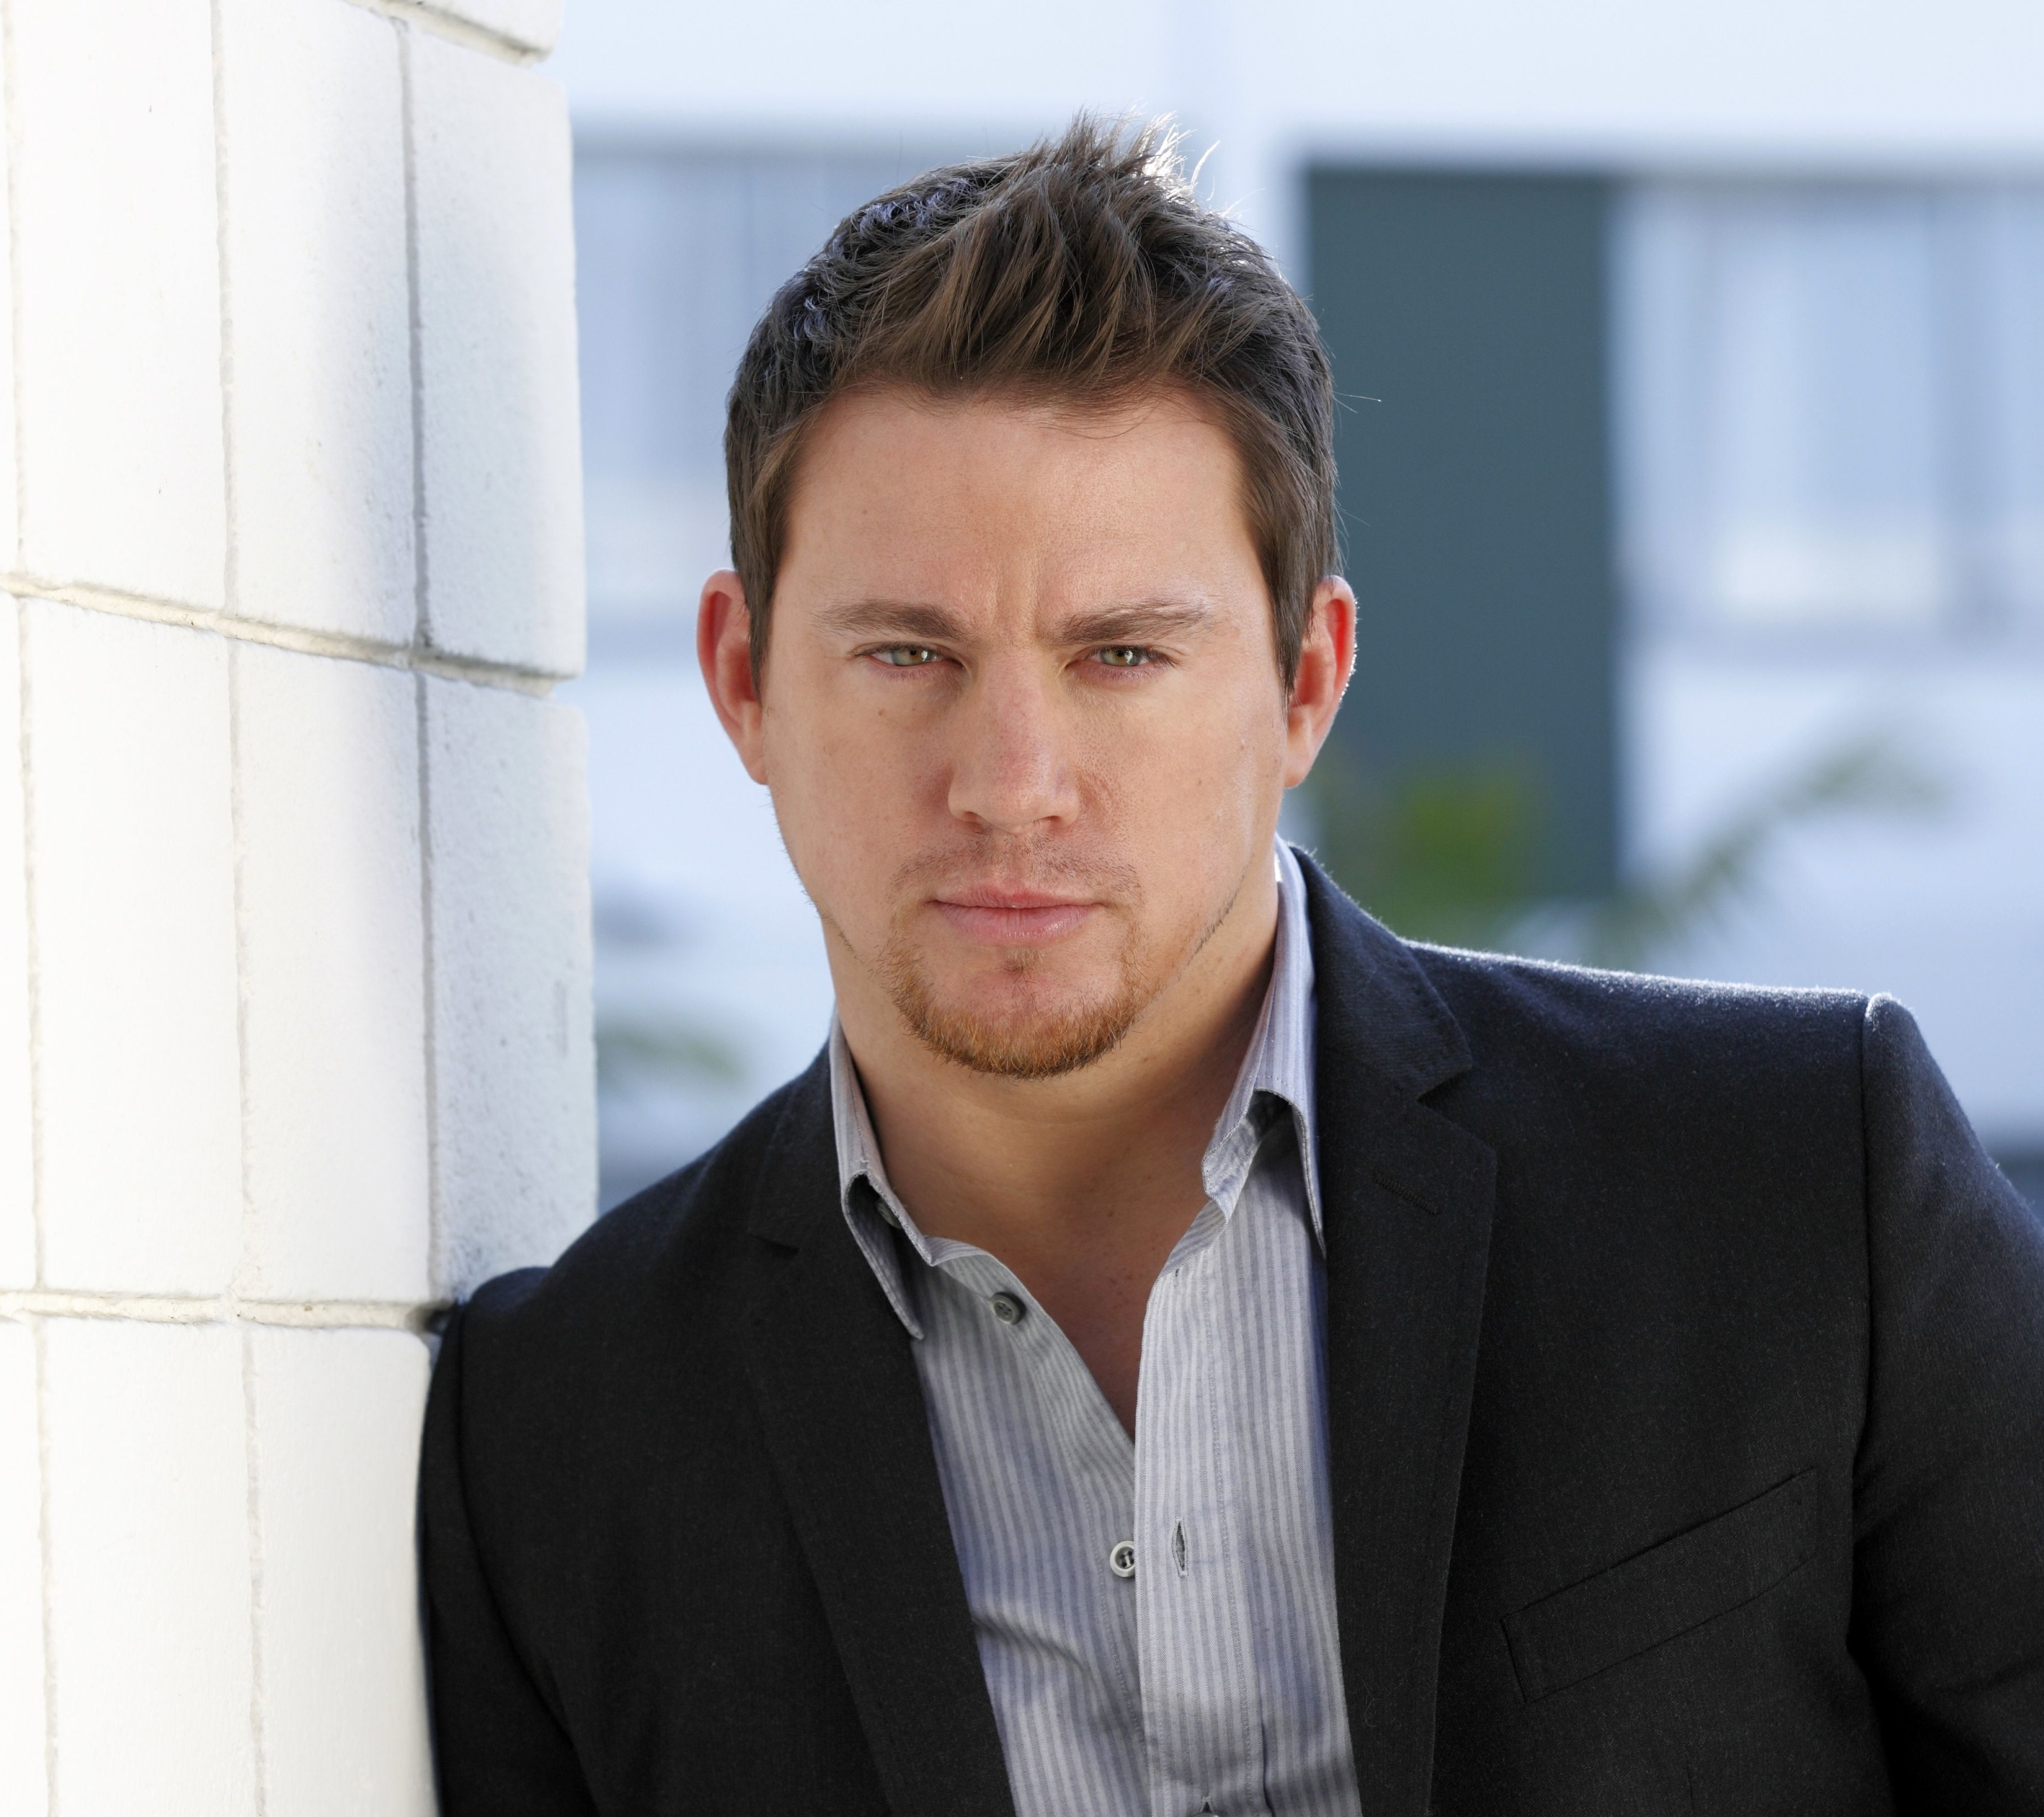 celebrity/channing tatum (2880x2560) wallpaper id: 675213 - mobile abyss